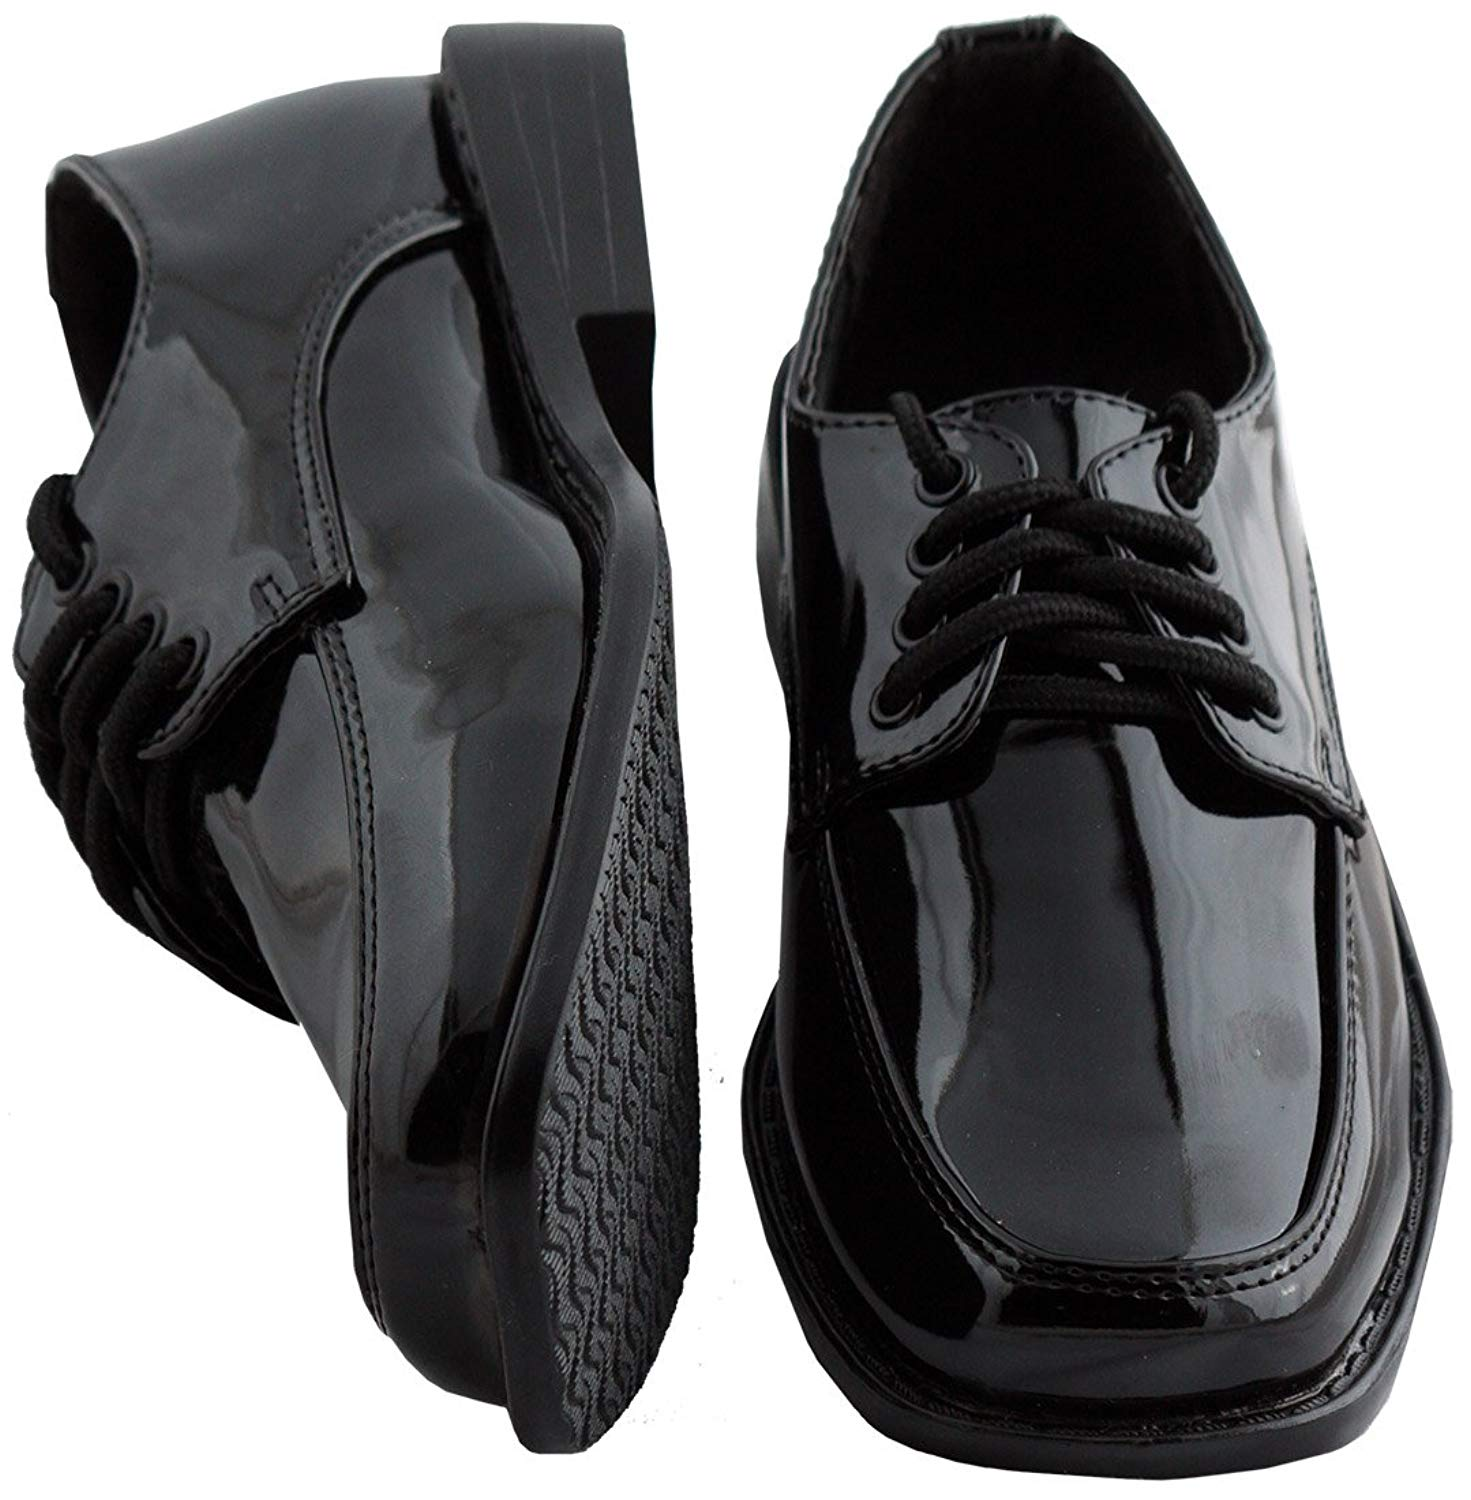 41f33ae91bd Get Quotations · Toddler   Boys Black Square Toe Tuxedo Shoes